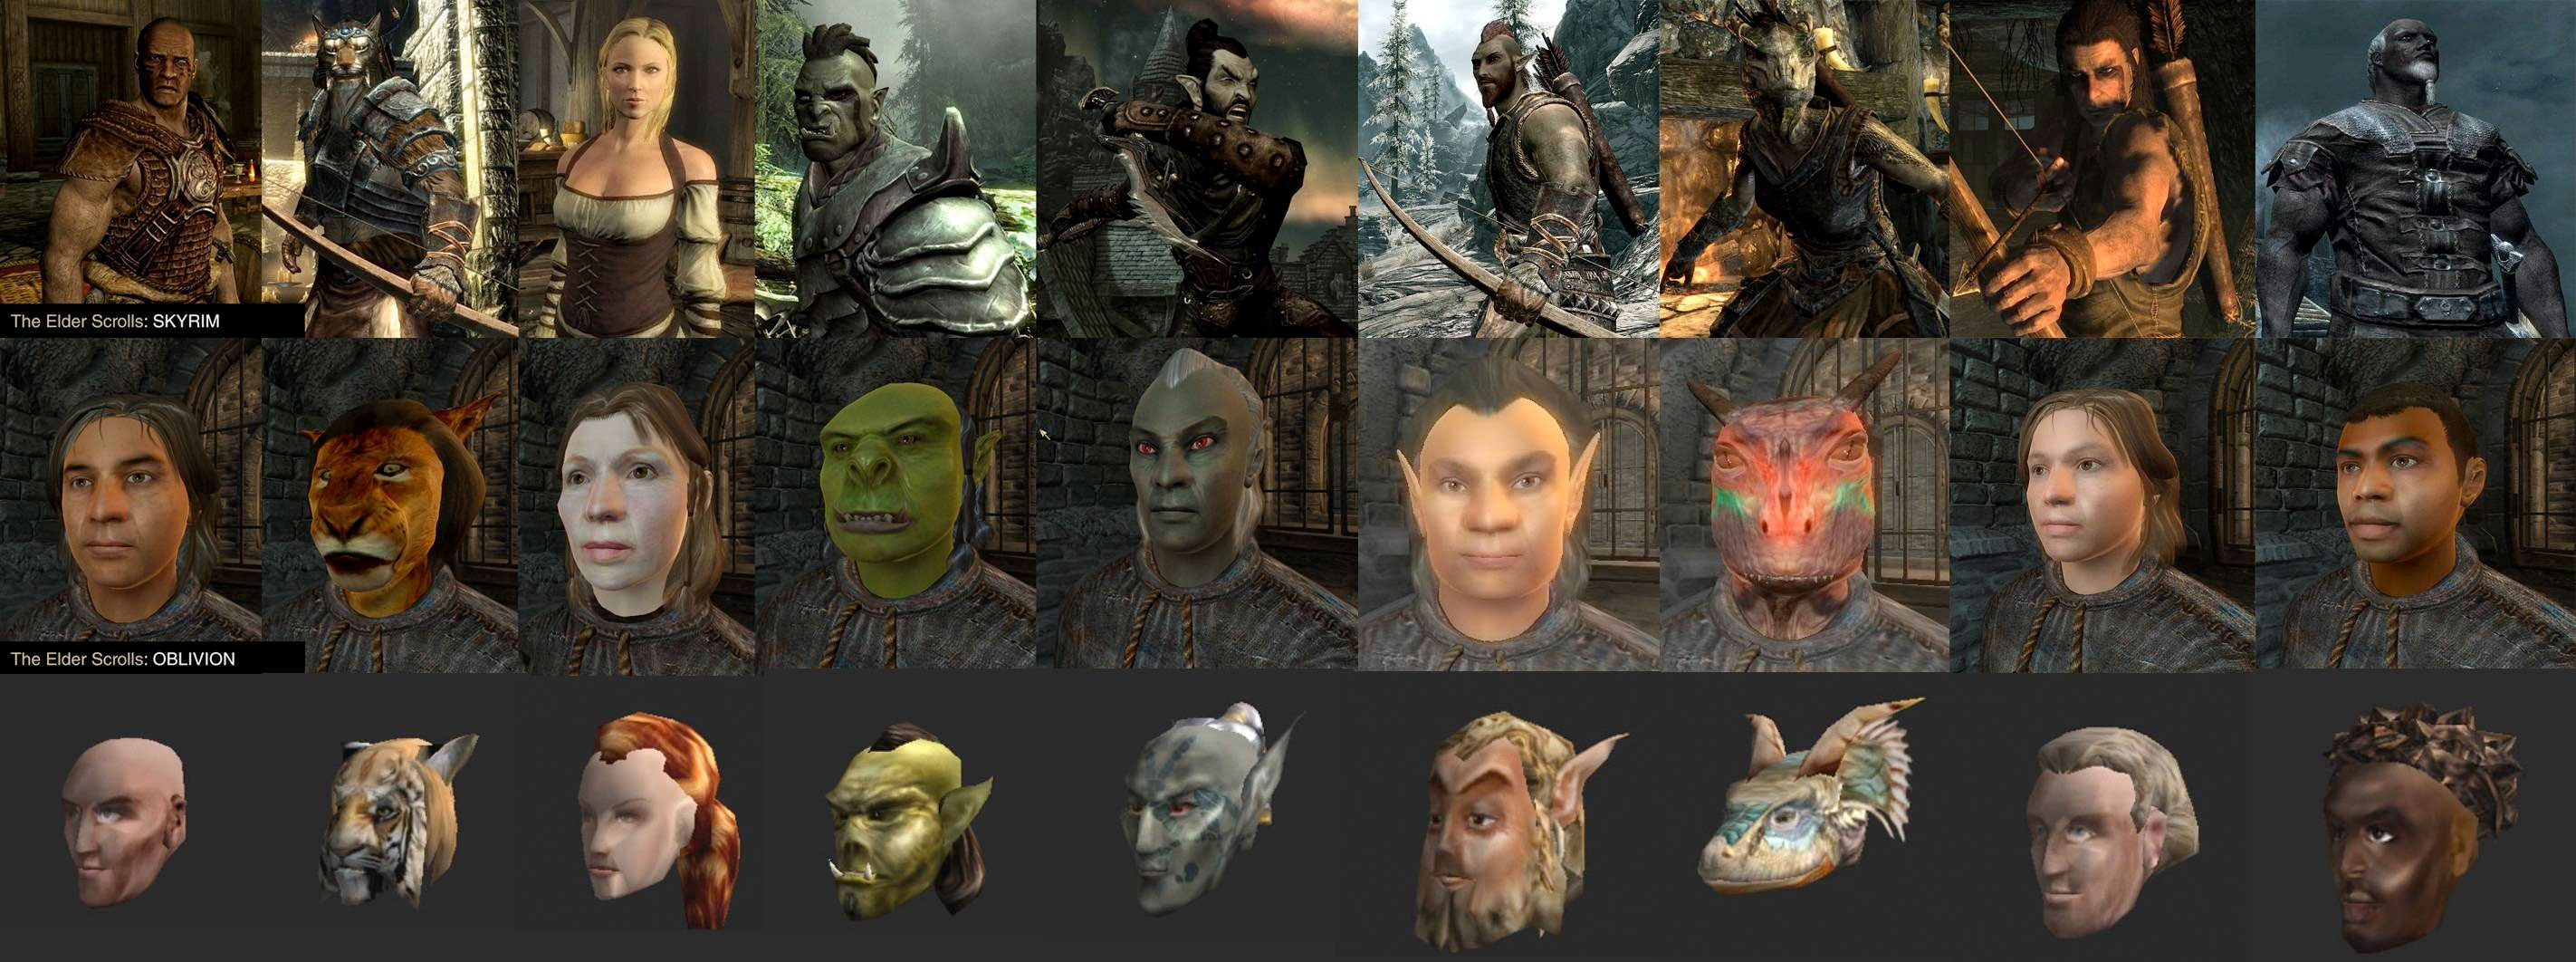 Thread: Character Screens Revealed for Elder Scrolls V: Skyrim